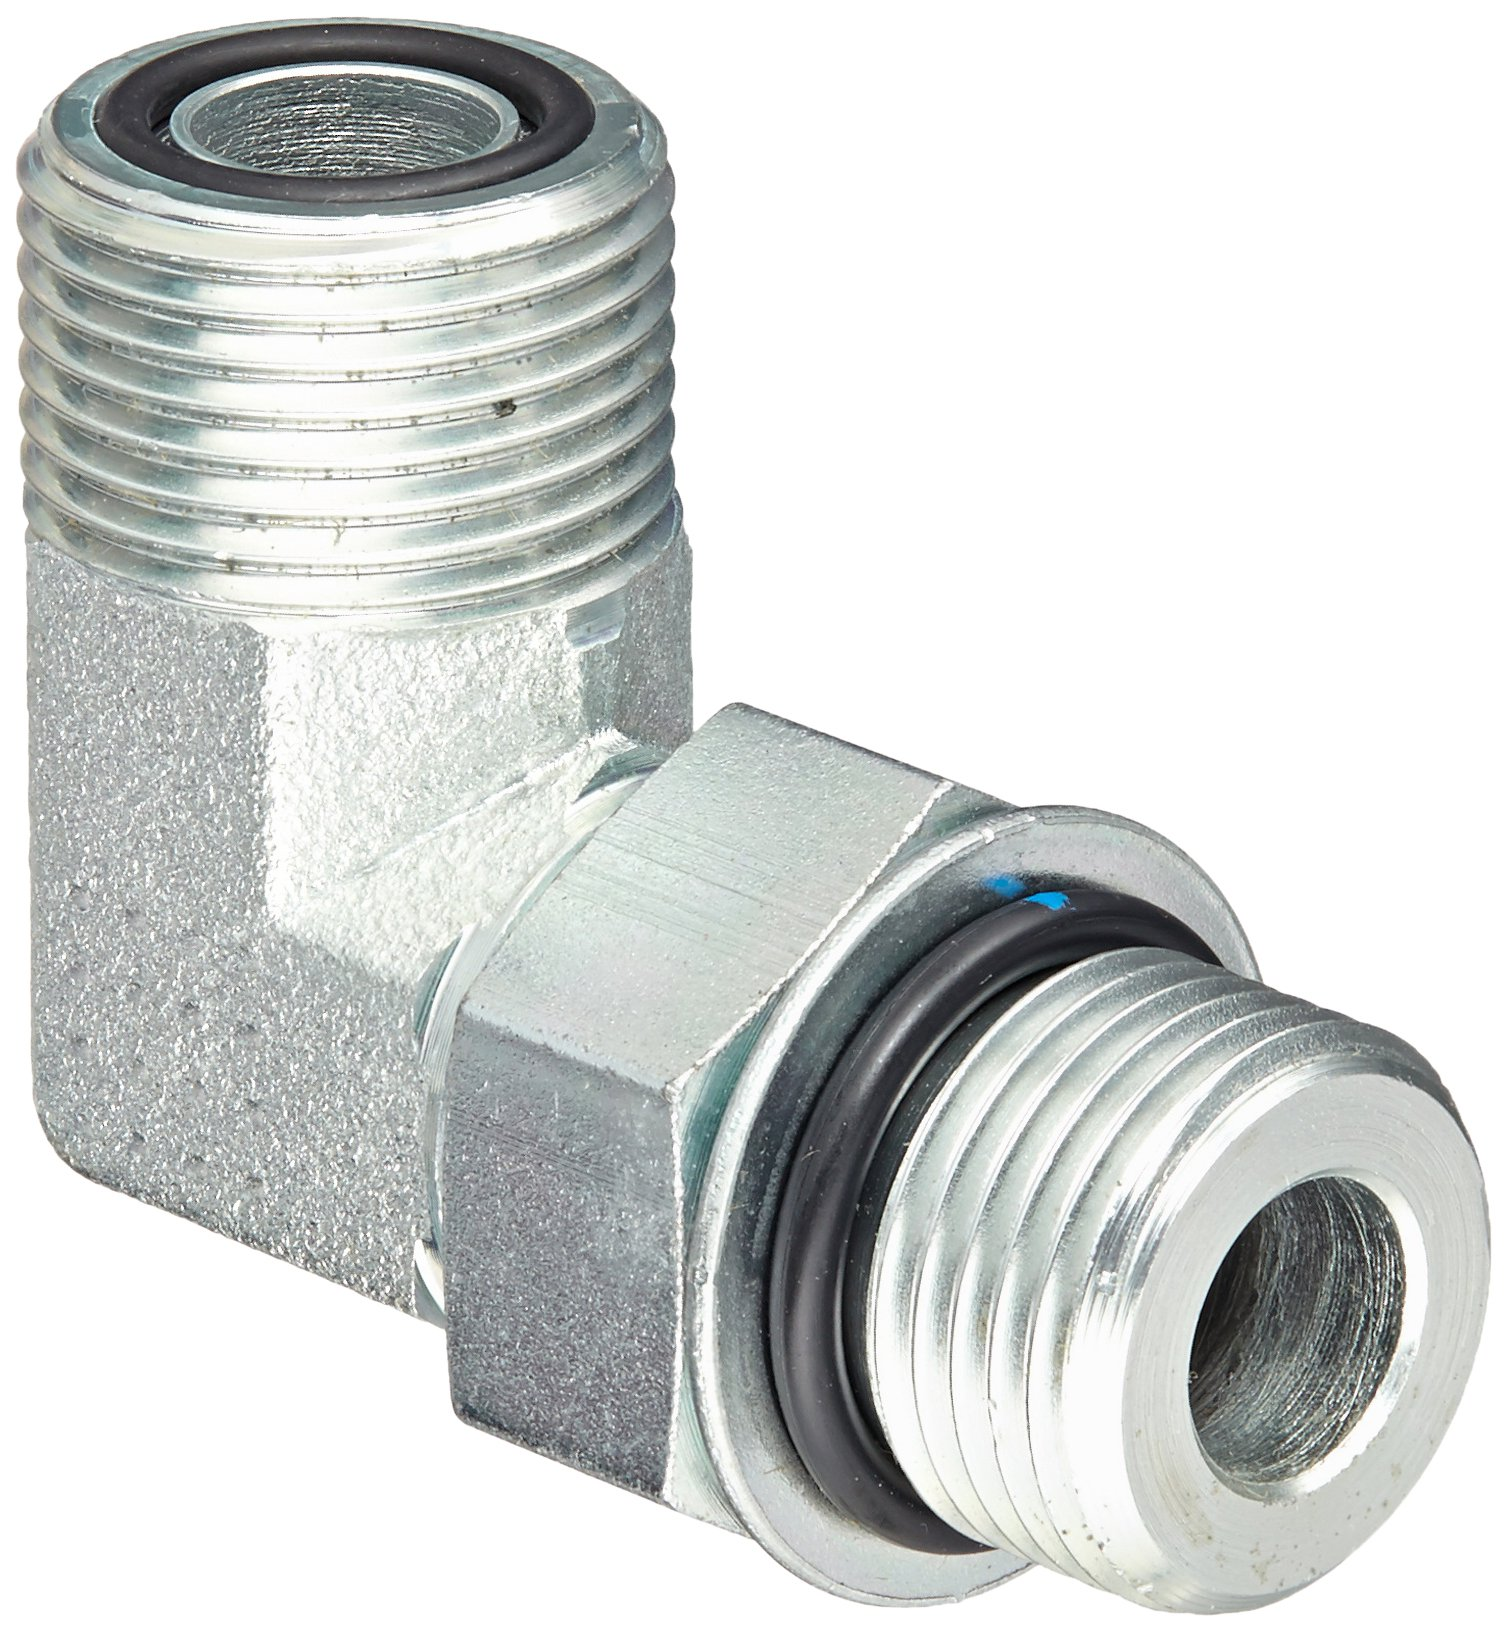 Eaton Aeroquip FF1868T0808S Steel Tube Fitting, 90 Degree Elbow, 1/2'' Tube OD Face Seal Male x 1/2'' O-Ring Boss Male by Aeroquip